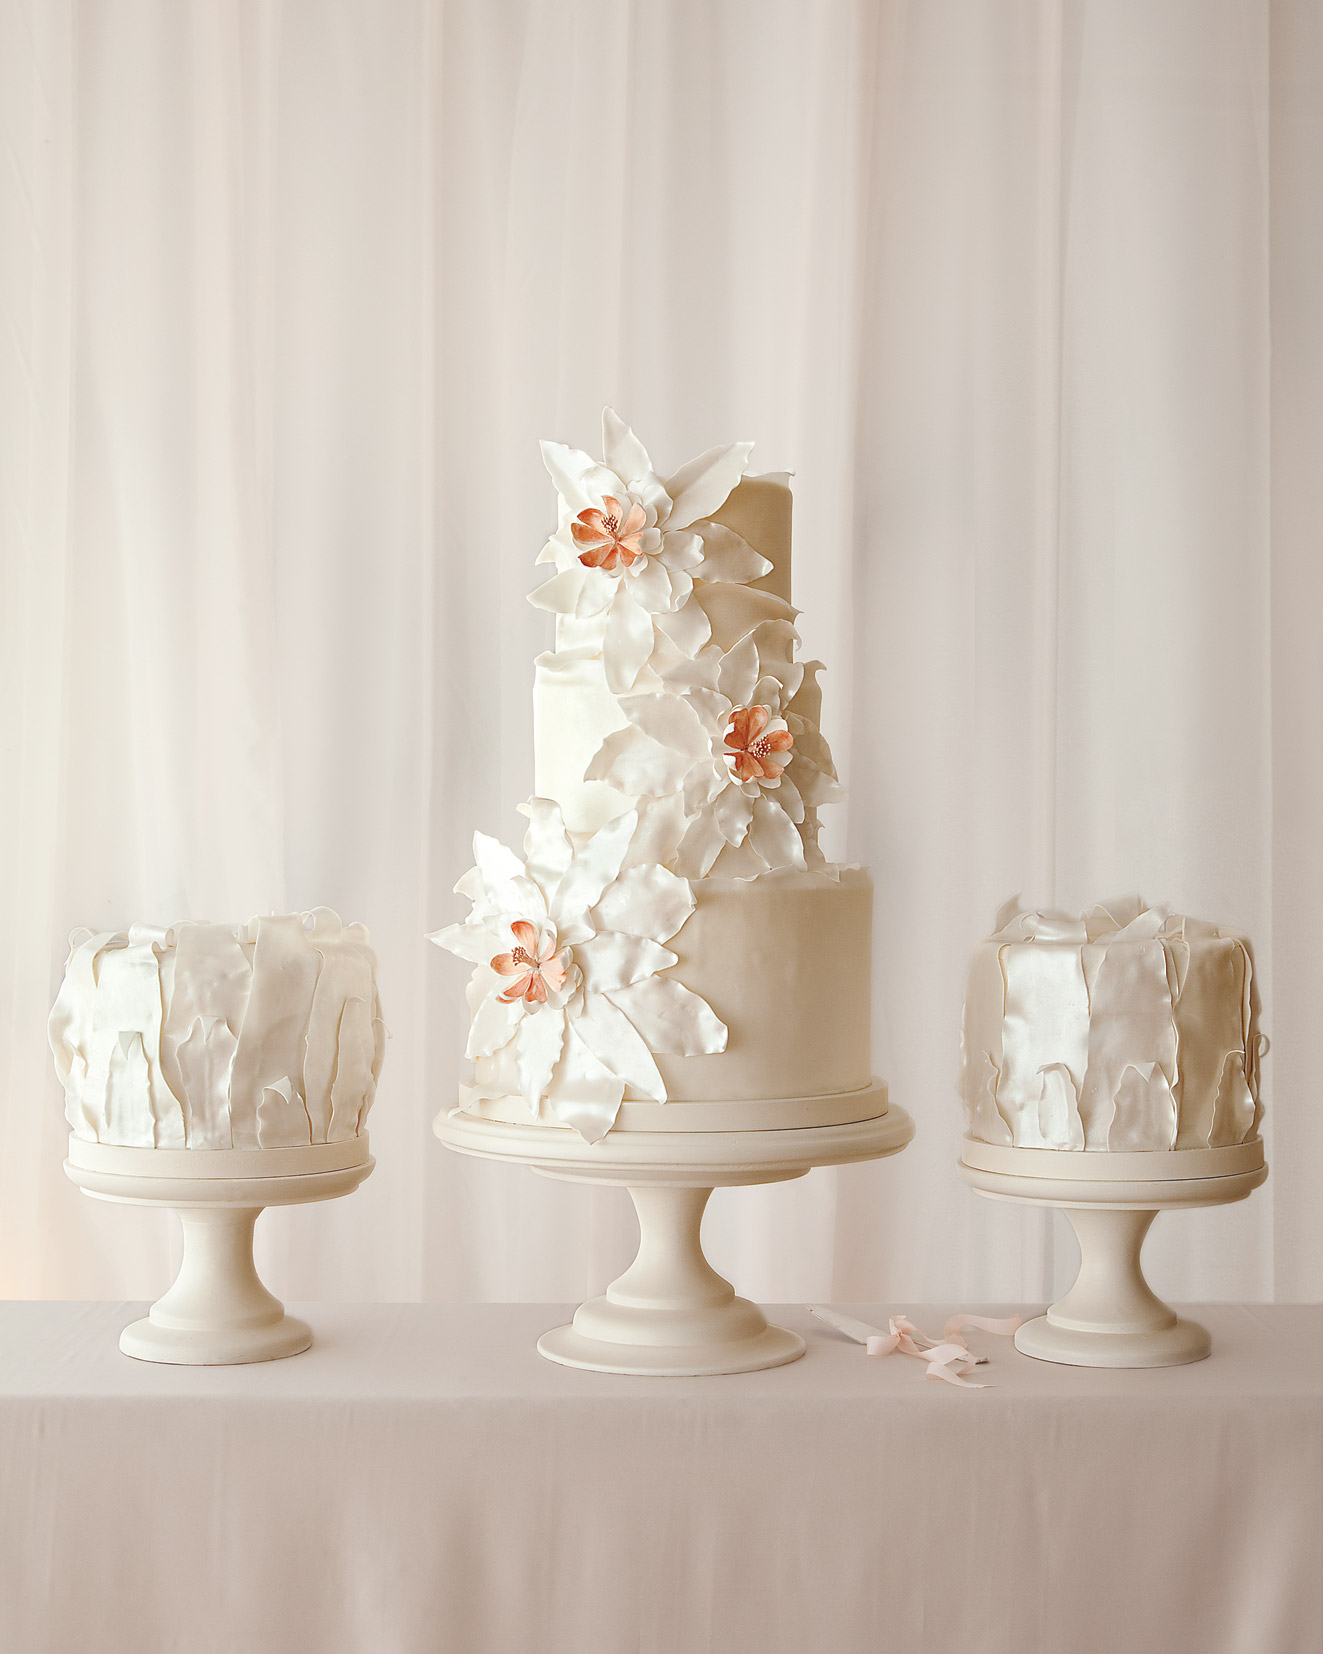 Wedding Cakes by Jim Smeal